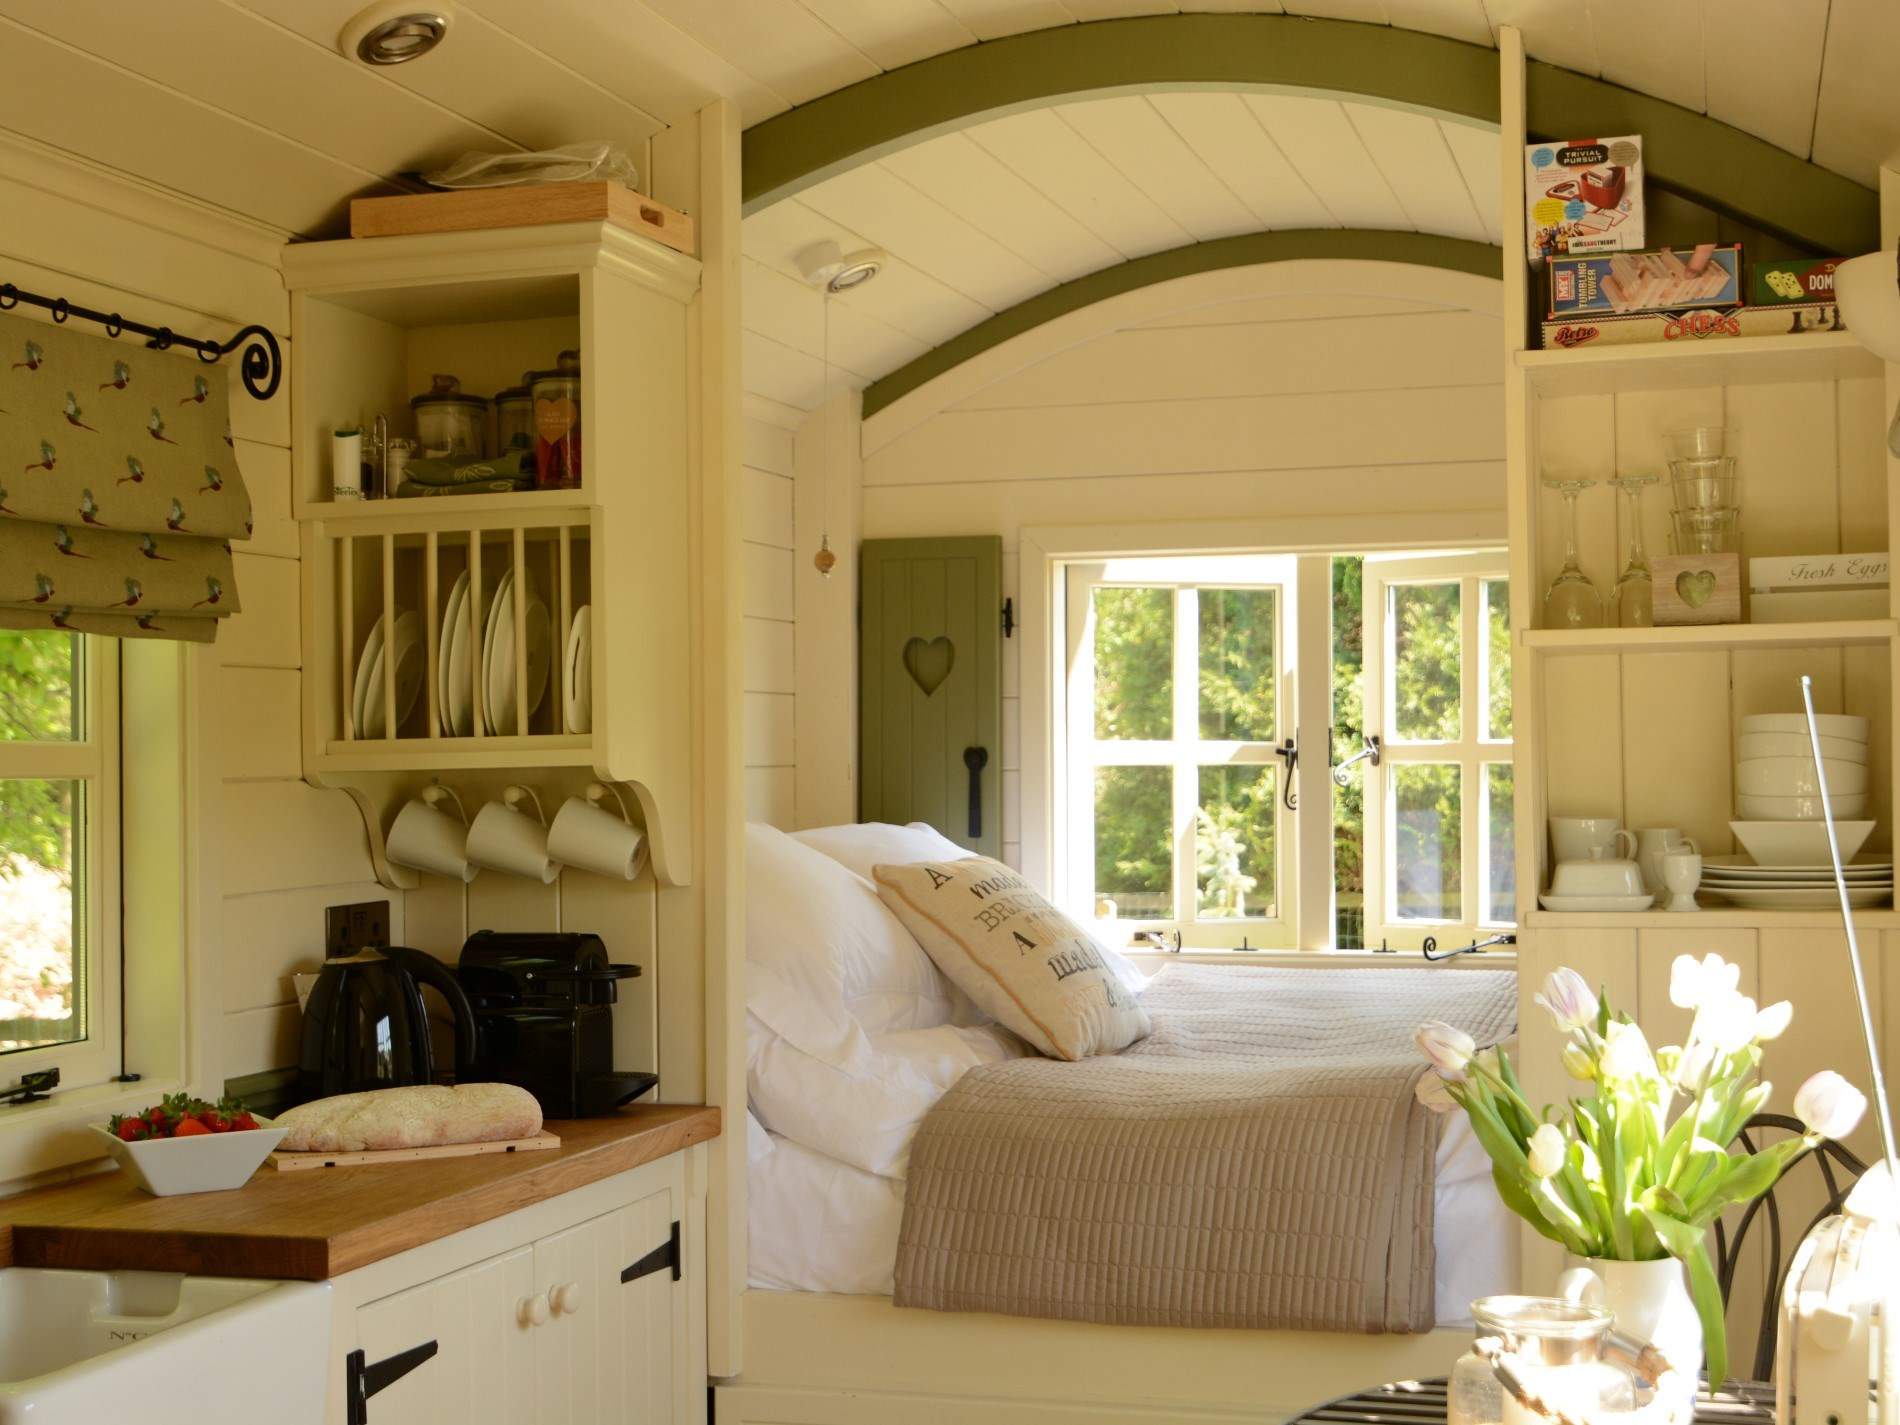 Well appointed shepherd's hut